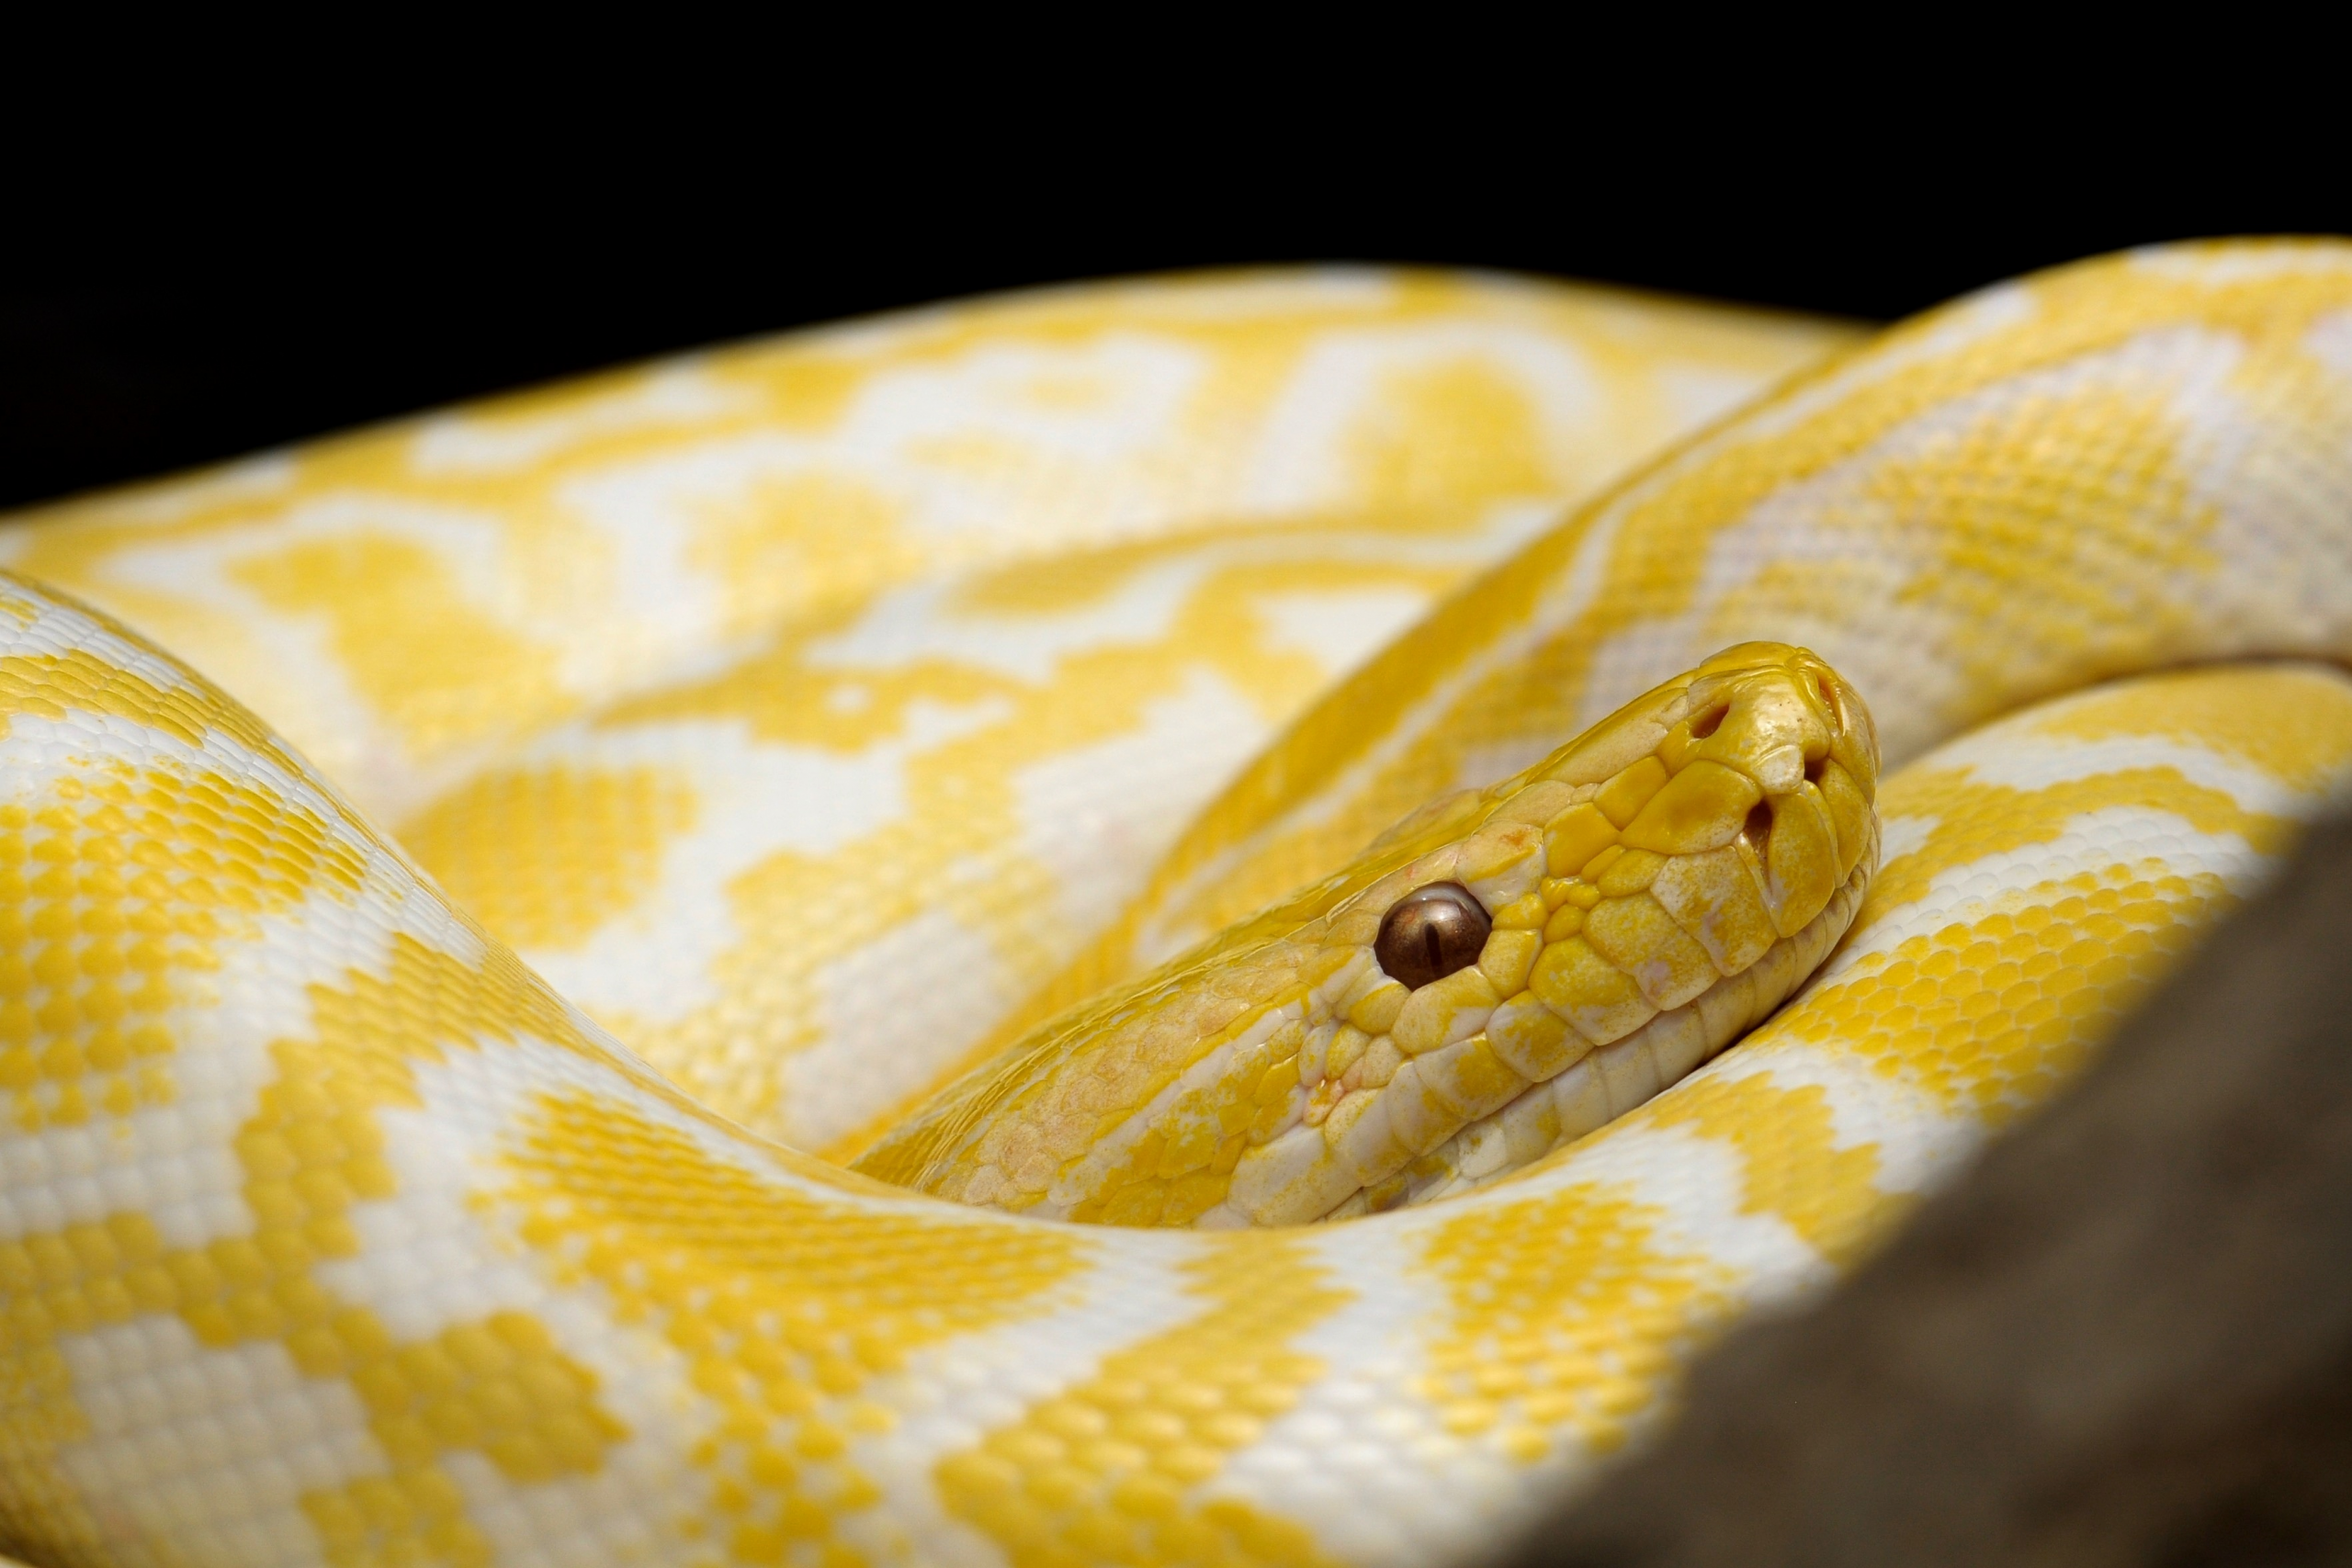 Giant Albino Snake Discovered Among Goodwill Donations